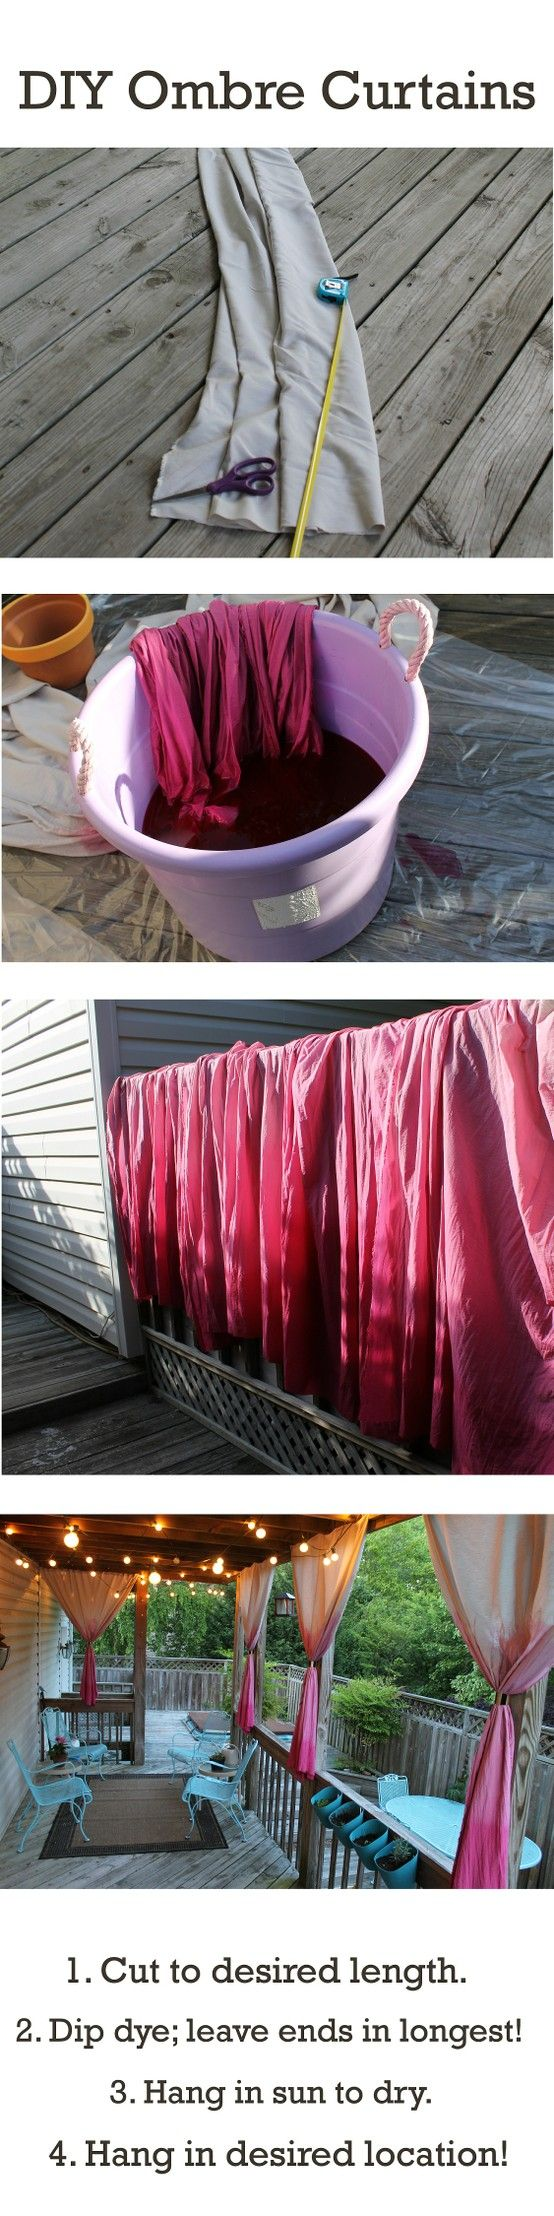 DIY: Ombre Curtains Tutorial.